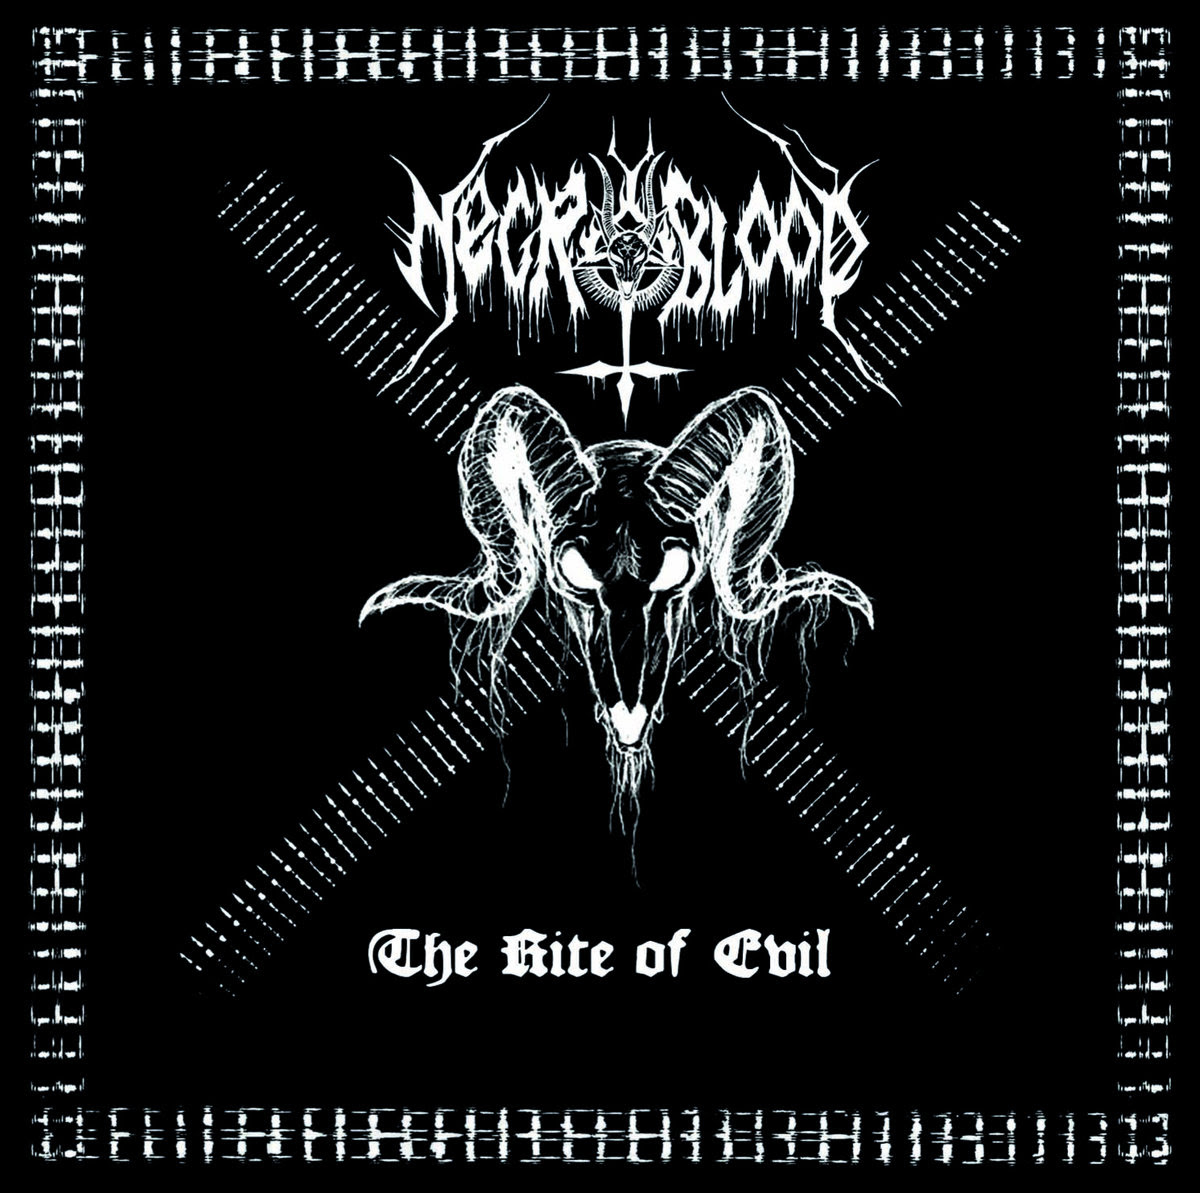 Necroblood - The Rite of Evil (Compilation 2012)